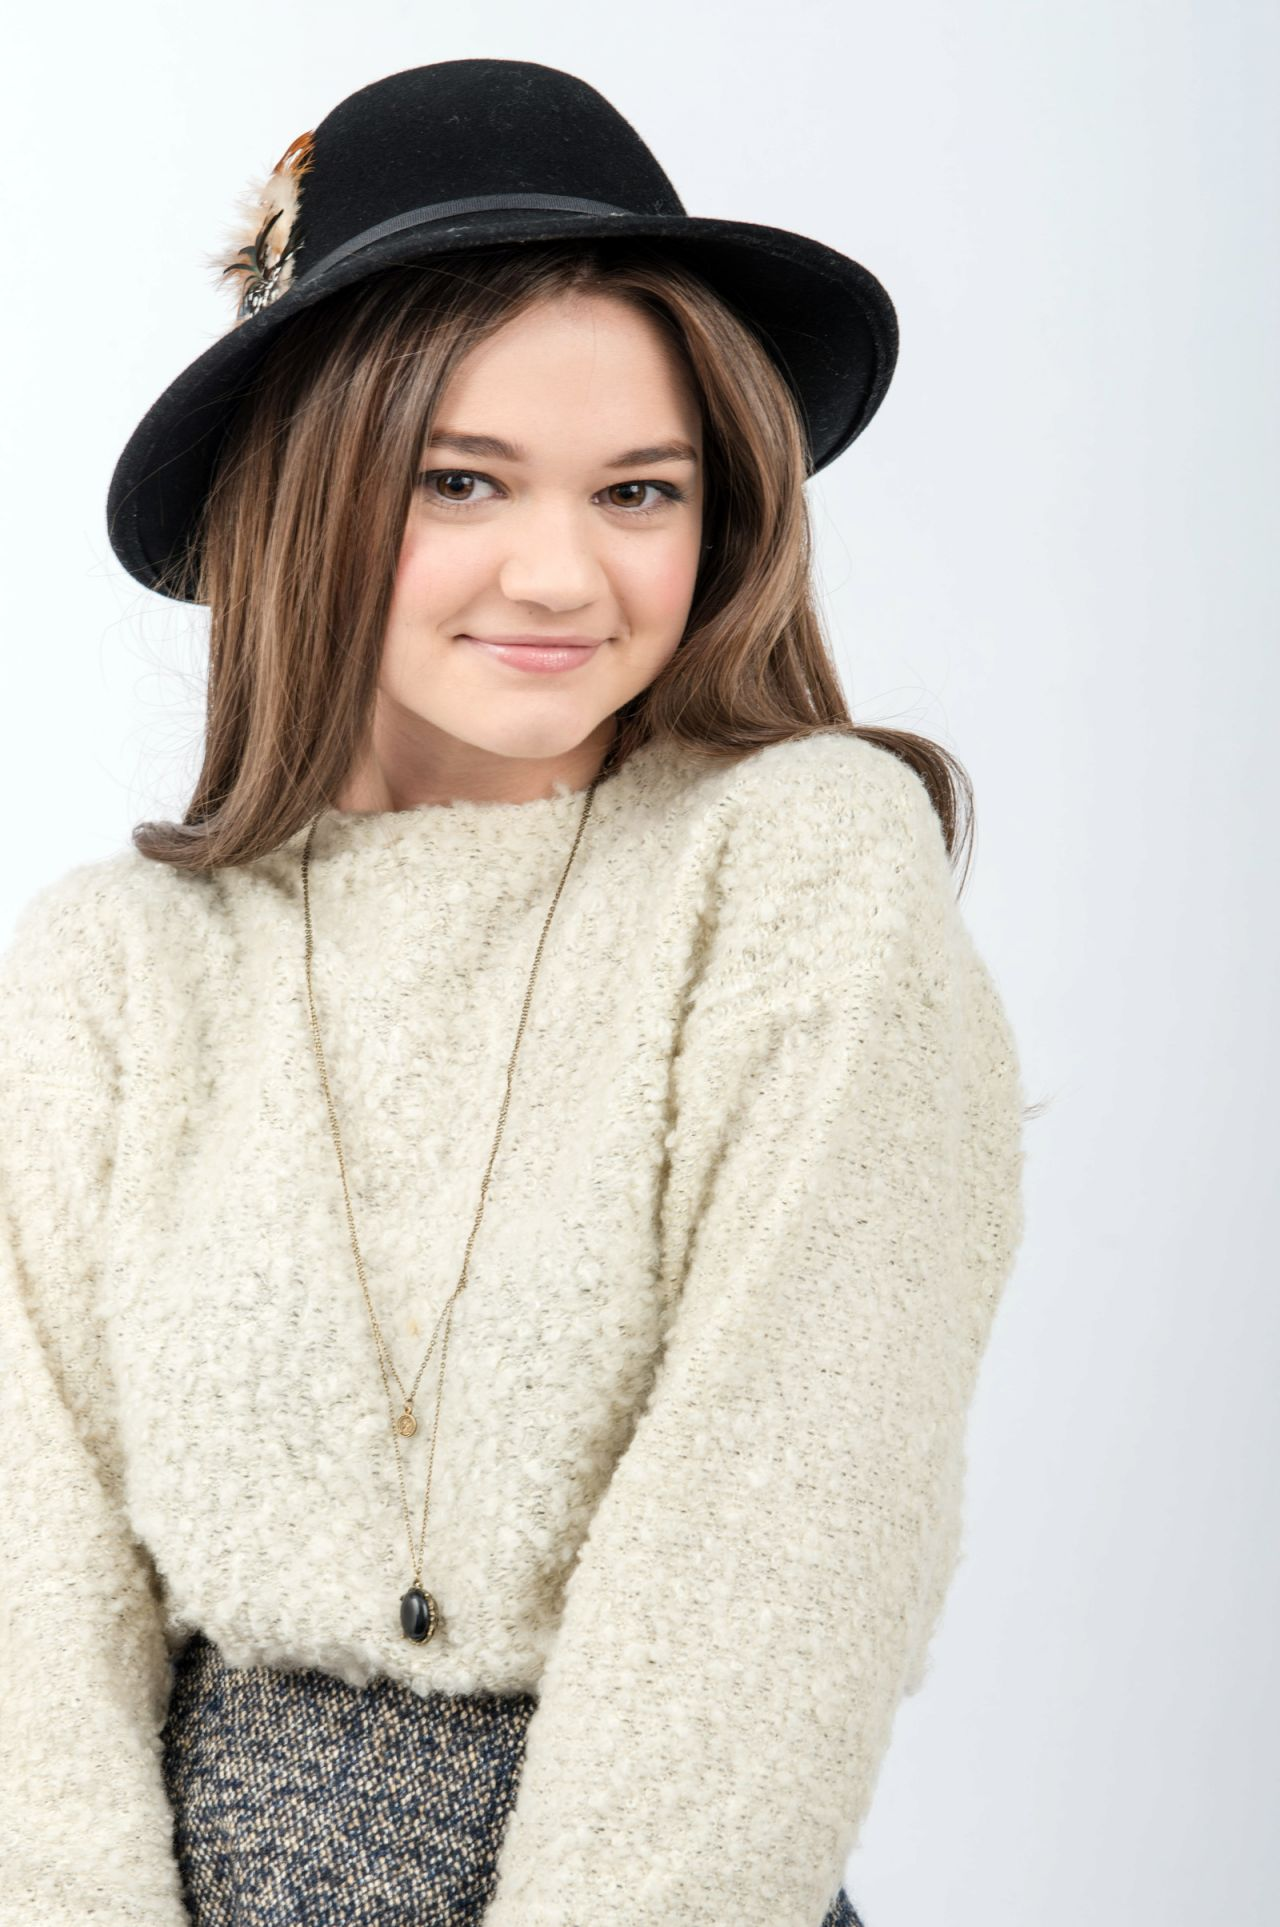 Ciara Bravo Photoshoot, December 2014